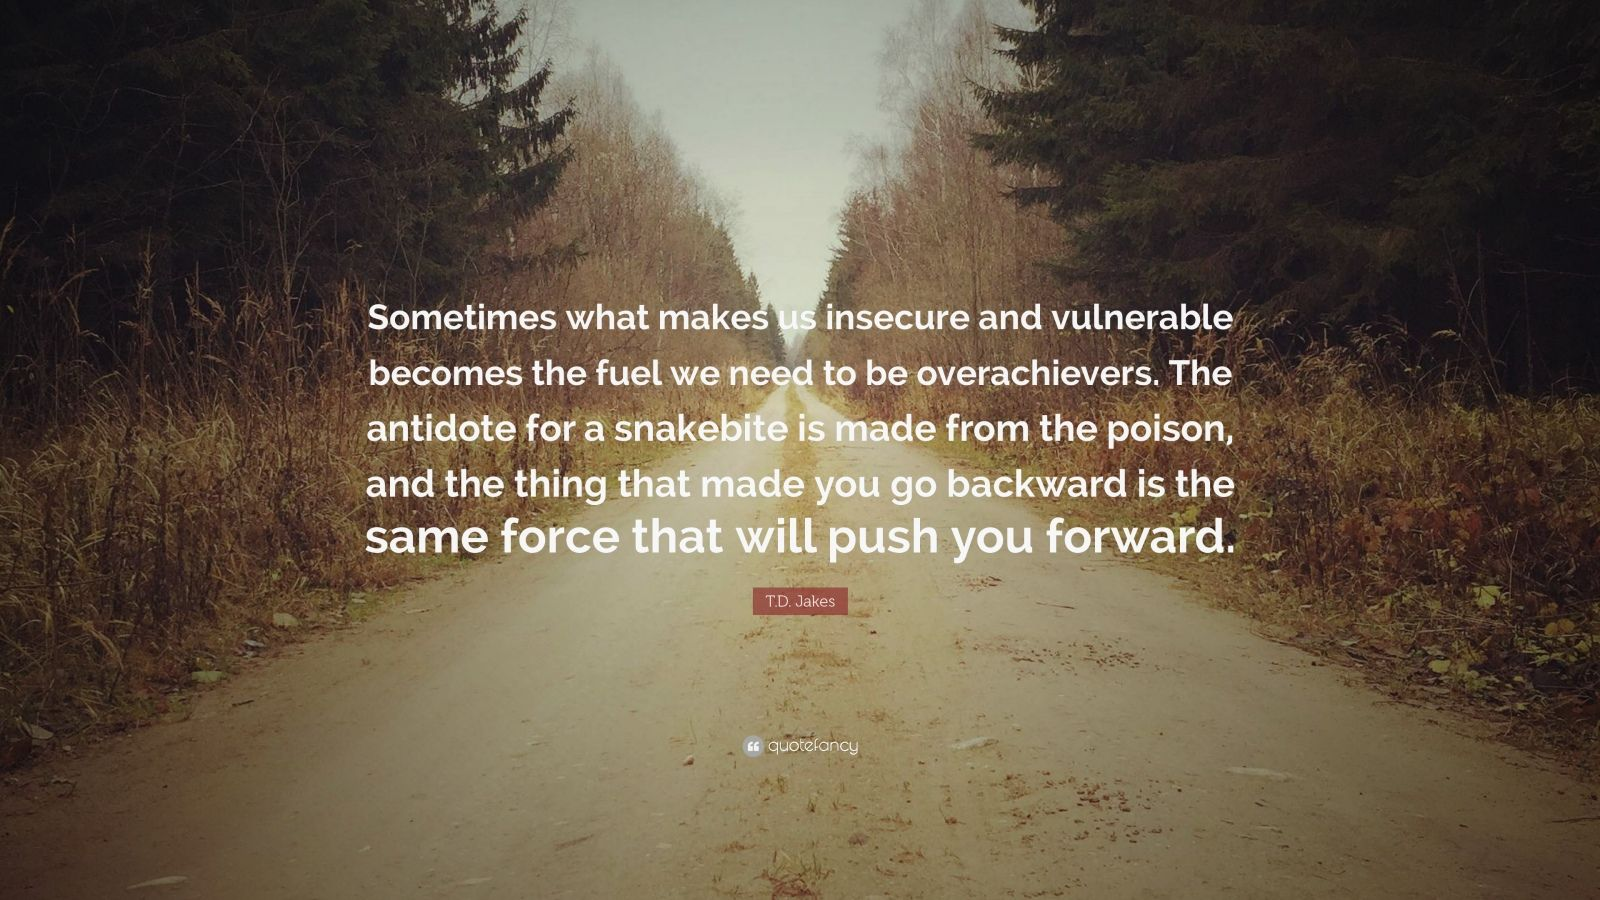 """T.D. Jakes Quote: """"Sometimes what makes us insecure and vulnerable becomes the fuel we need to be overachievers. The antidote for a snakebite is made from the poison, and the thing that made you go backward is the same force that will push you forward."""""""